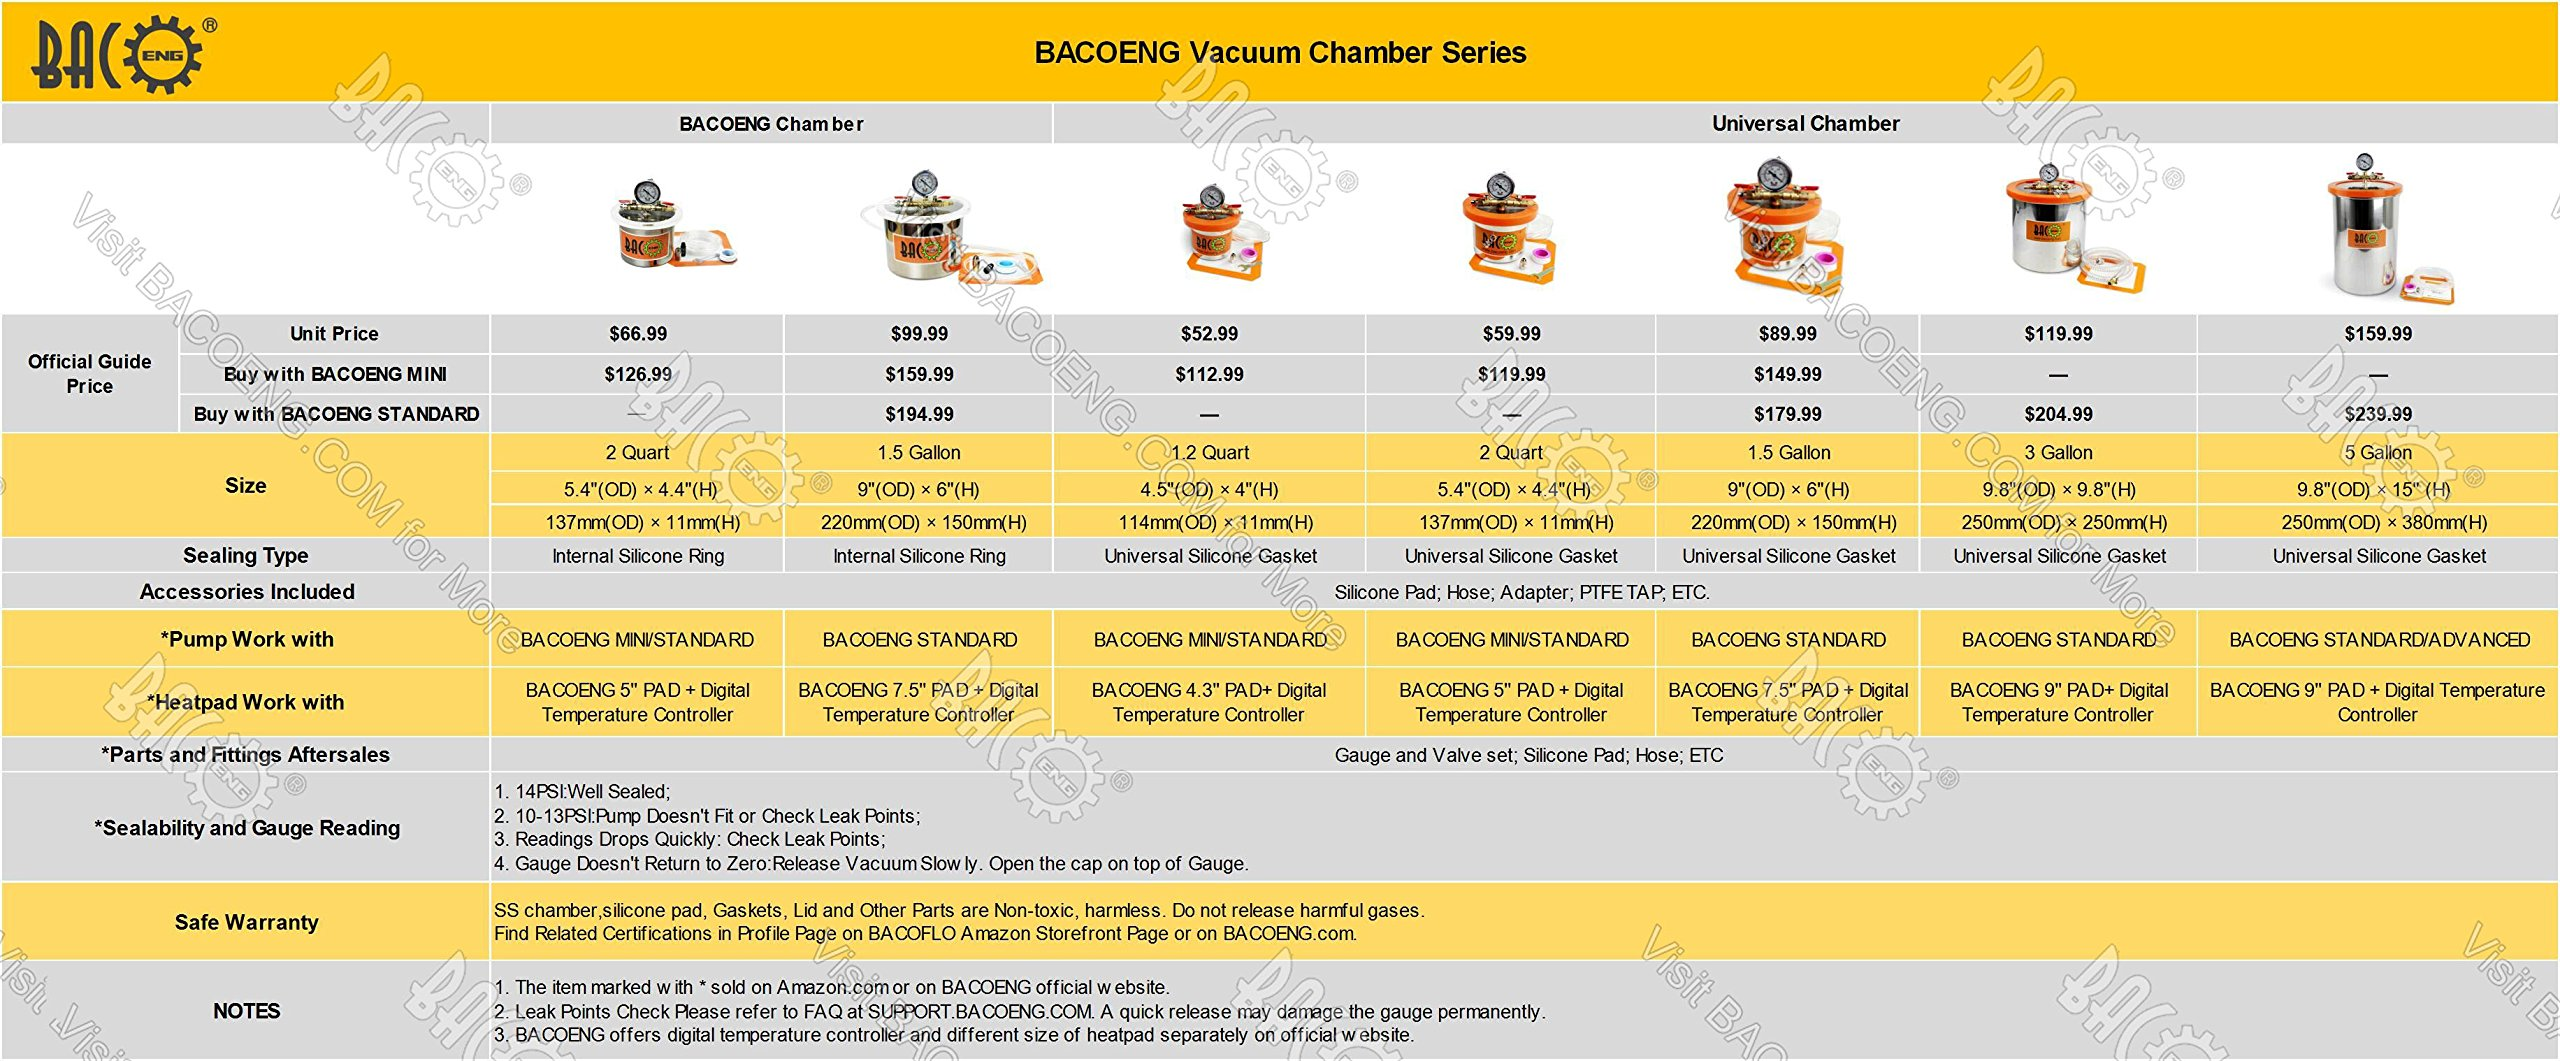 BACOENG 1.5 Gallon Stainless Steel Vacuum Chamber Silicone Kit for Degassing Resins, Silicone and Epoxies by BACOENG (Image #6)